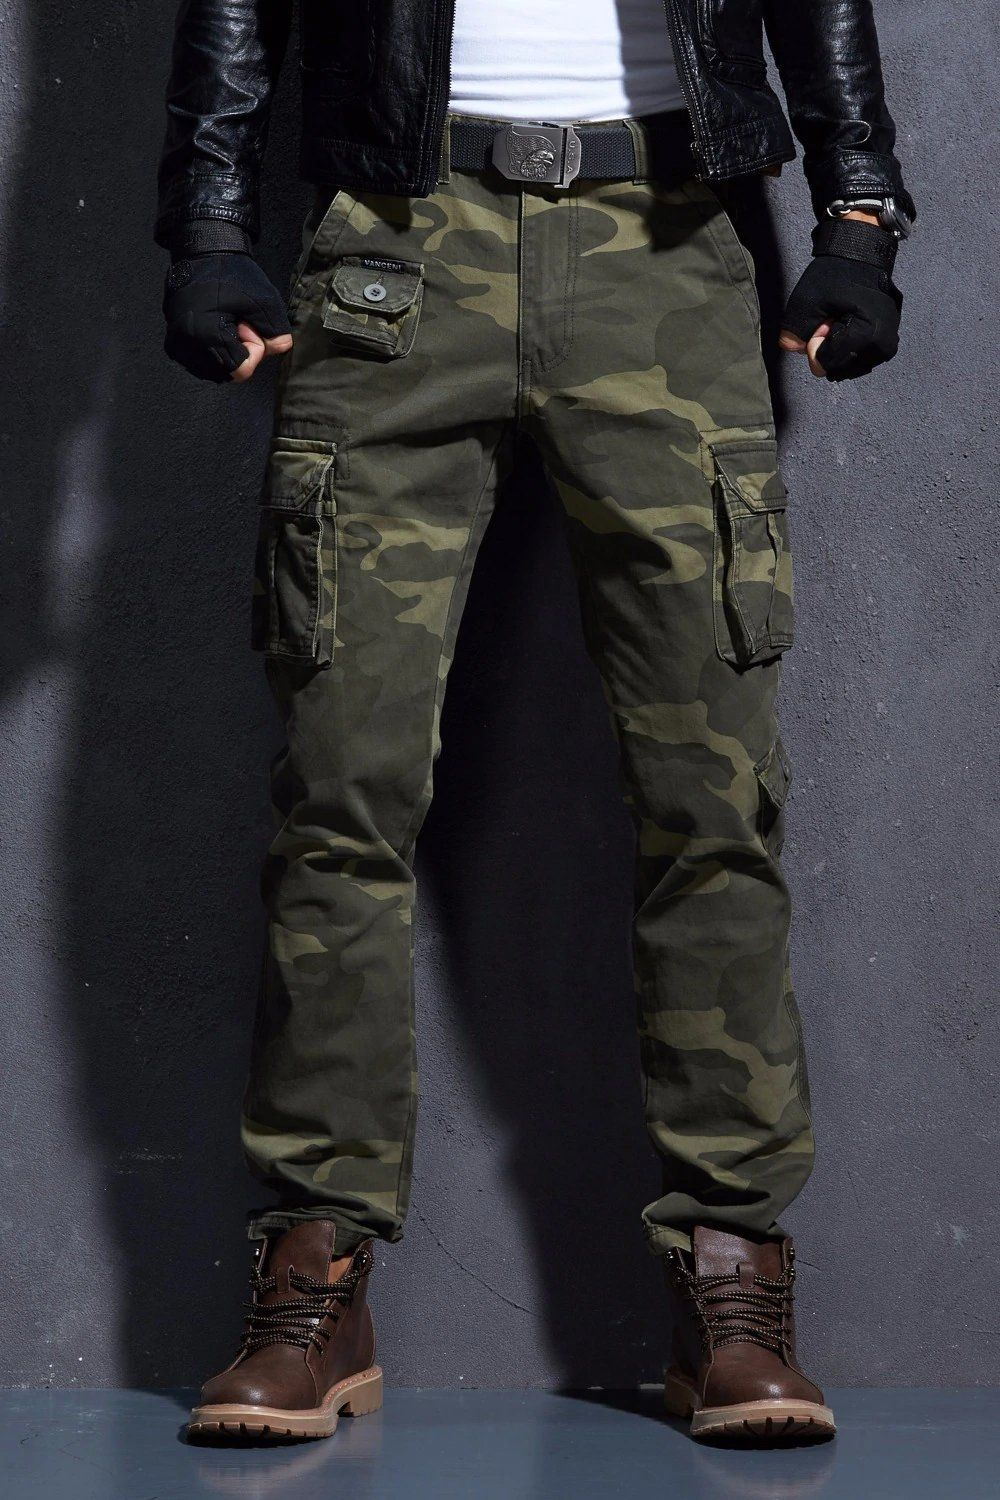 7cb495abeab Camouflage Pant s For Men Army Style Urban Clothing Military Style  Camouflage Multi-Pocket Tactical Cargo